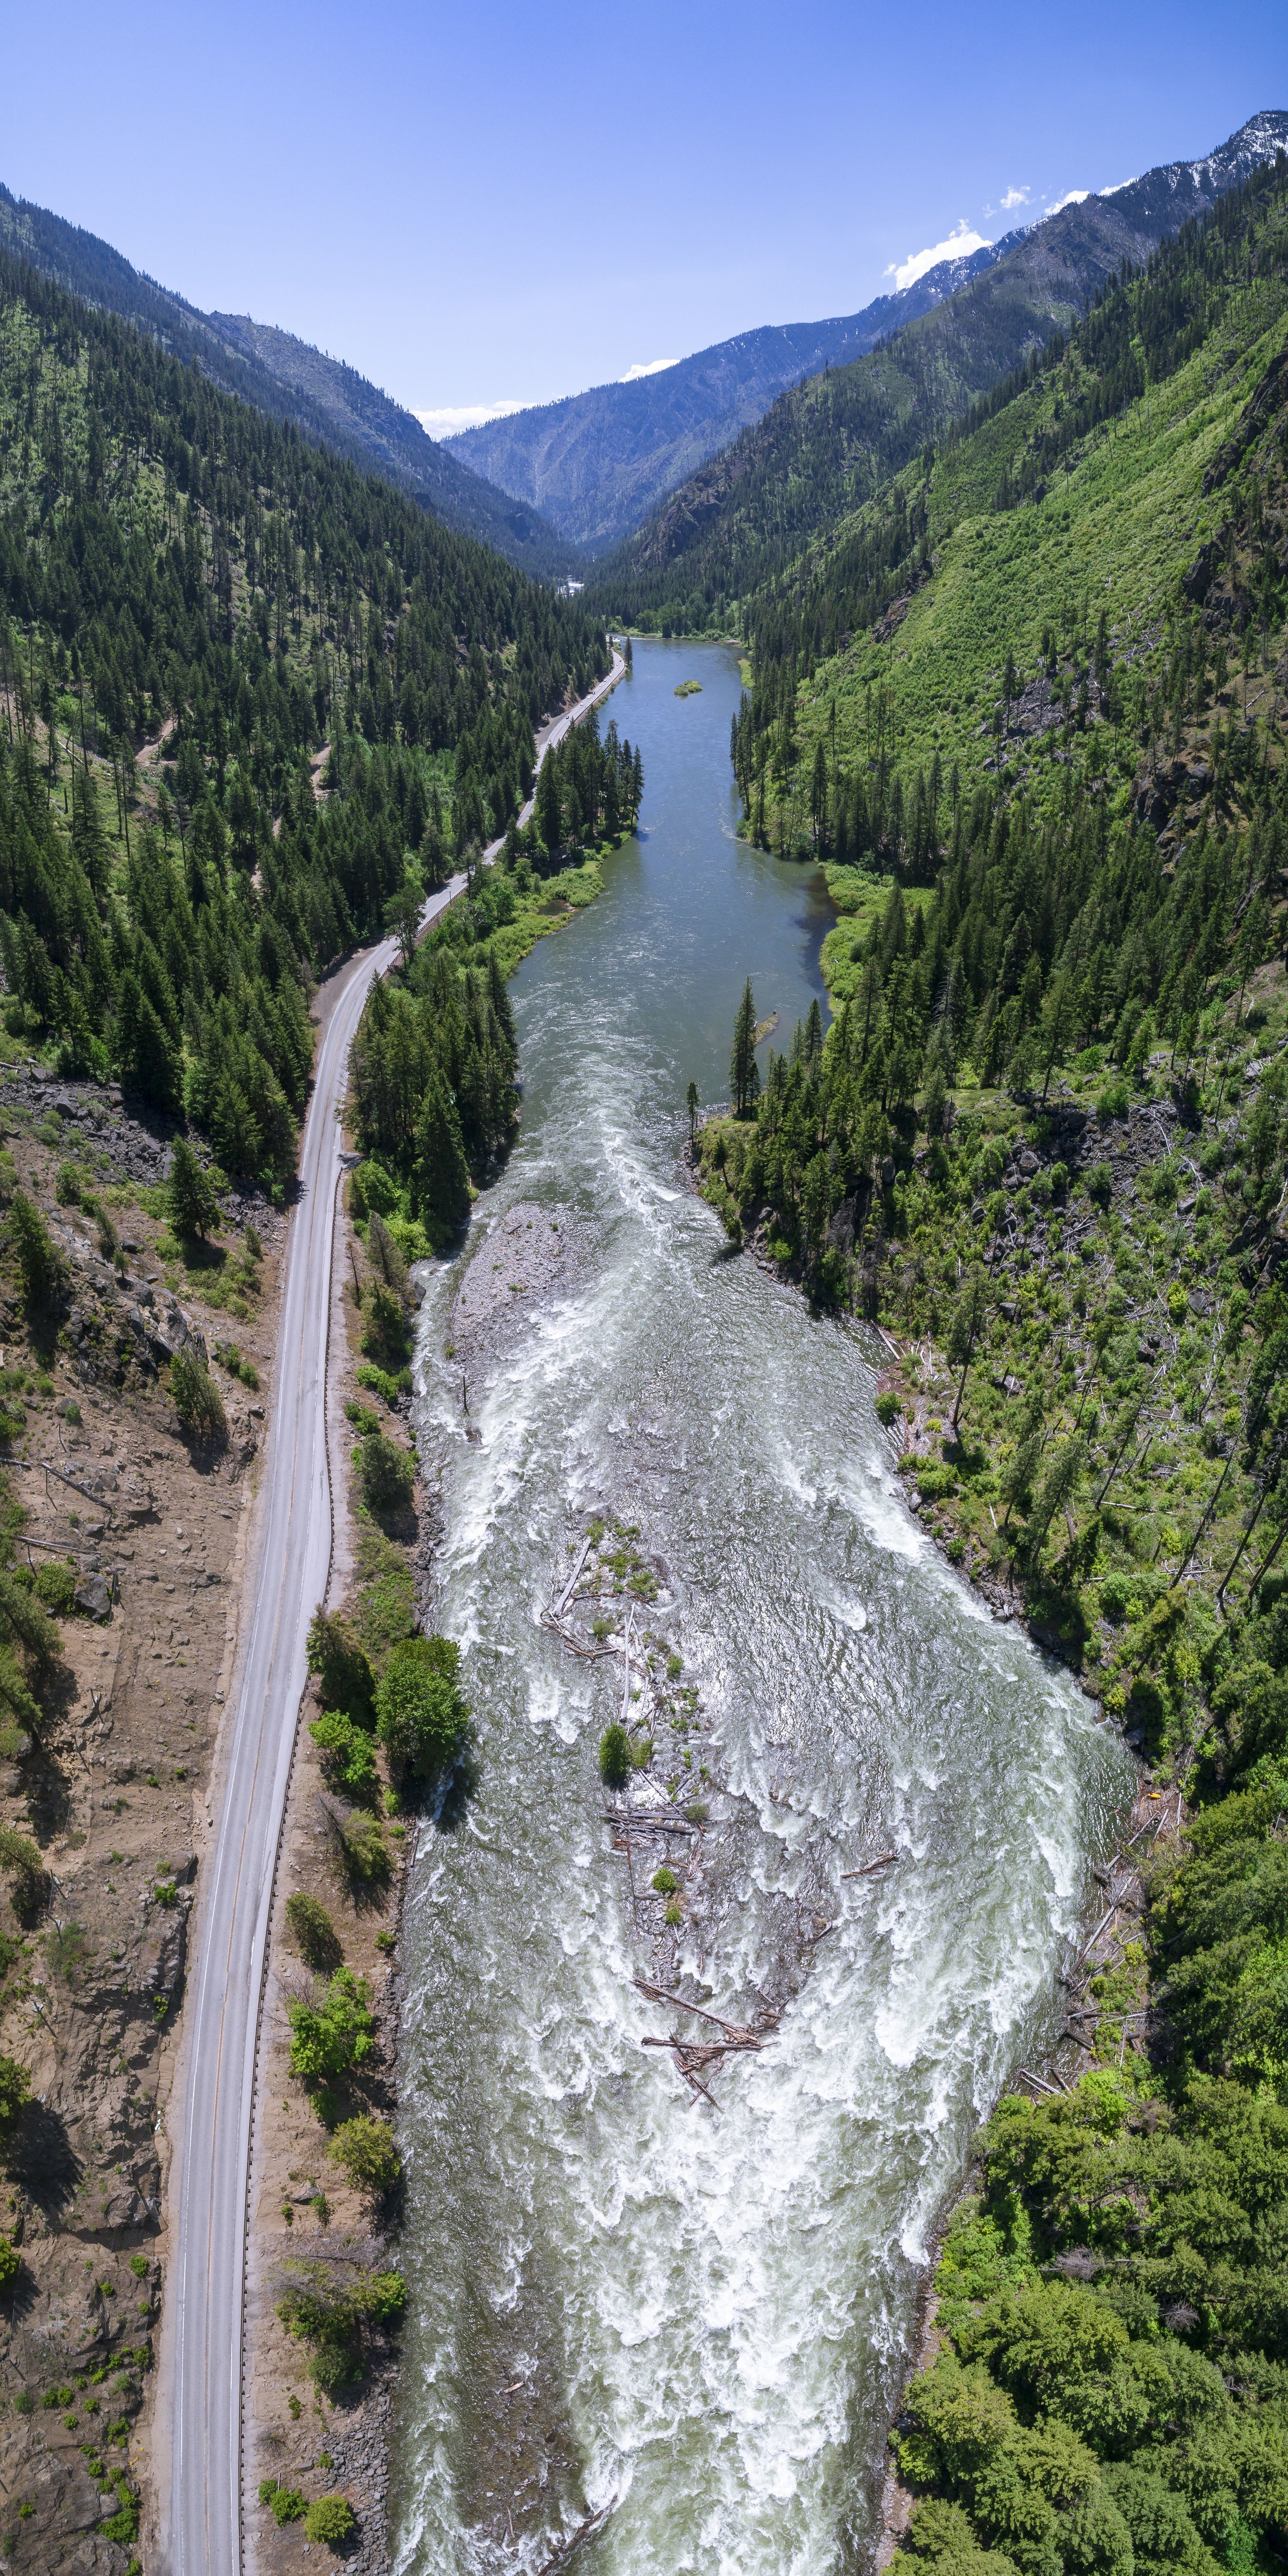 Tumwater_Canyon_Vertical_Panorama_in_Pacific_Northwest.jpeg